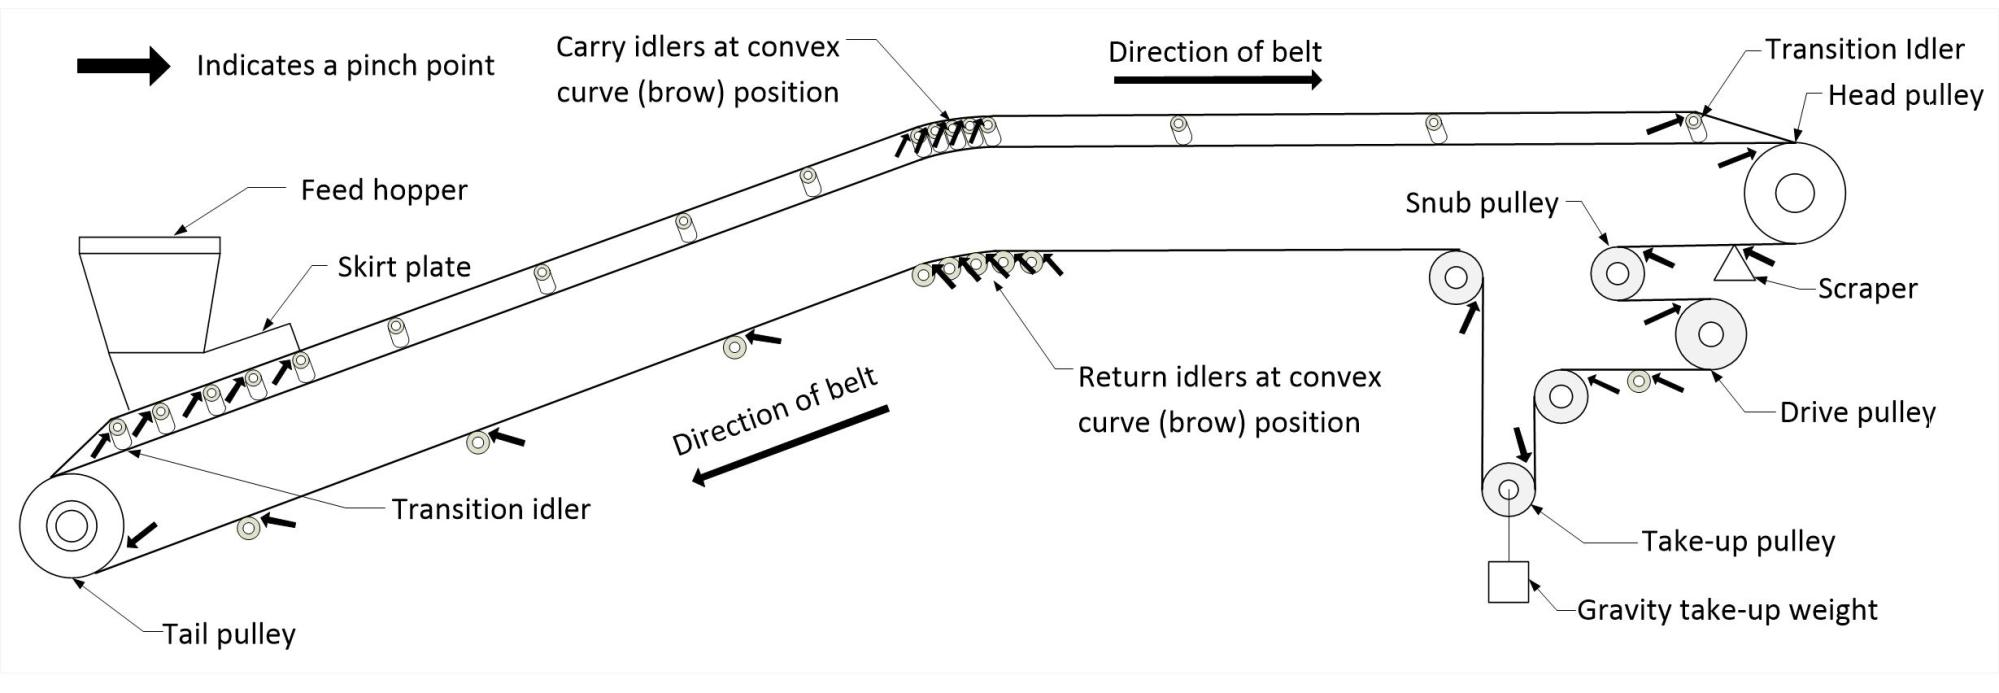 hight resolution of illustration showing belt conveyor pinch points a pinch point can be located at a head